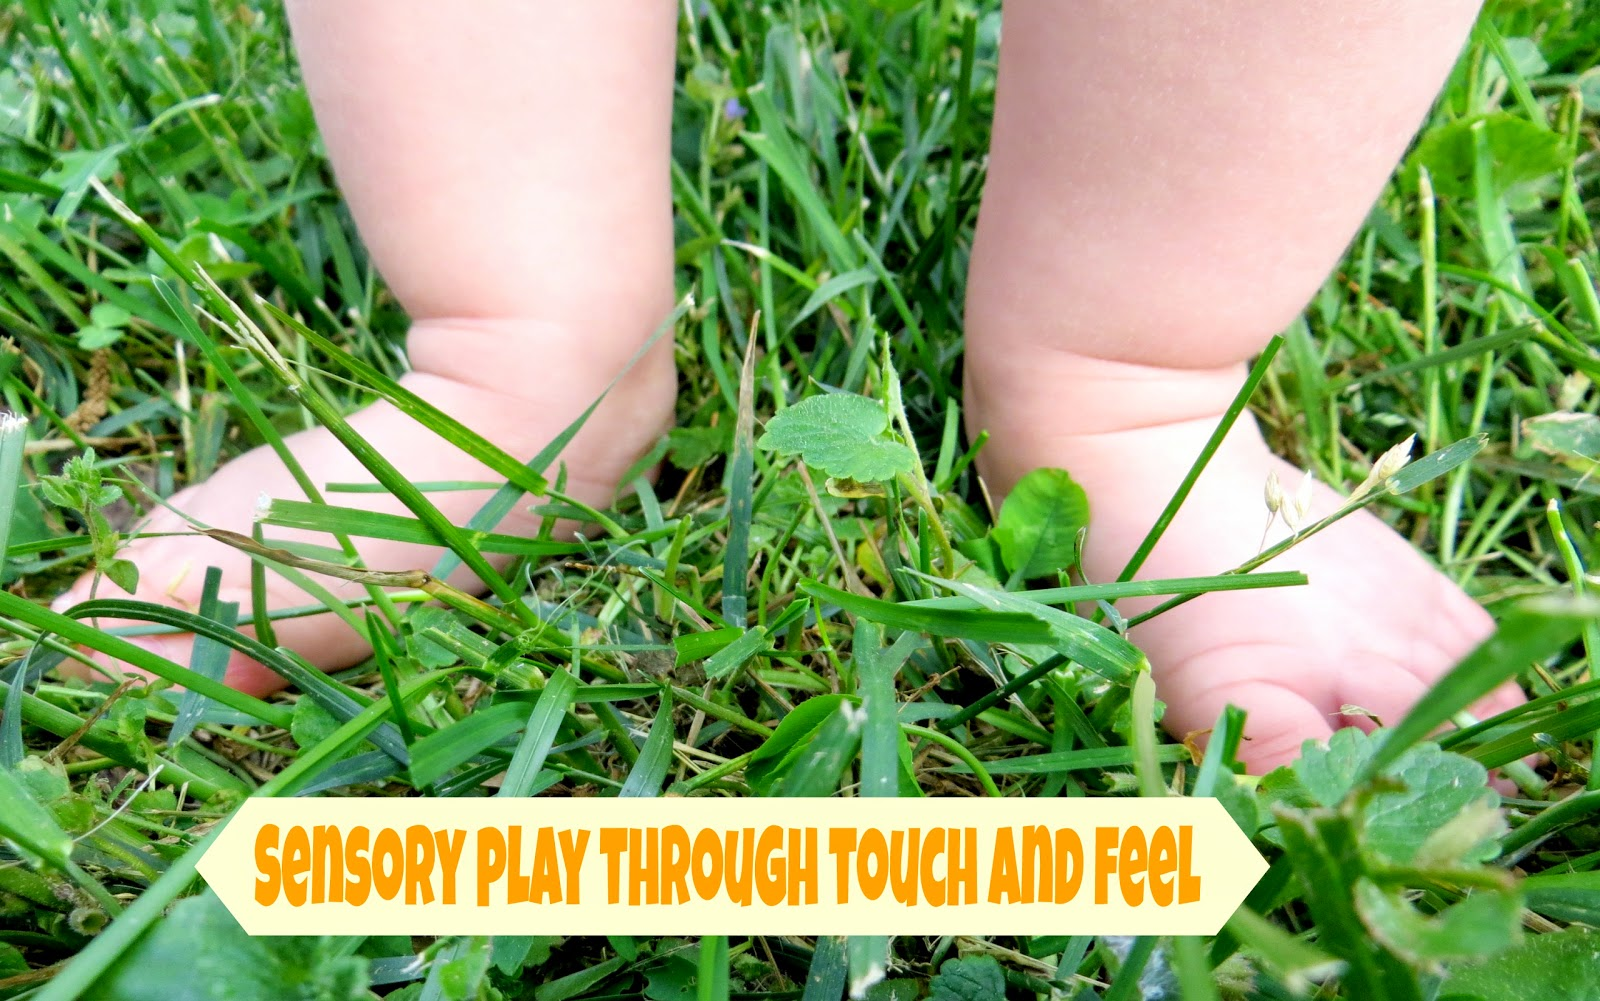 Sensory Play Through Touch and Feel